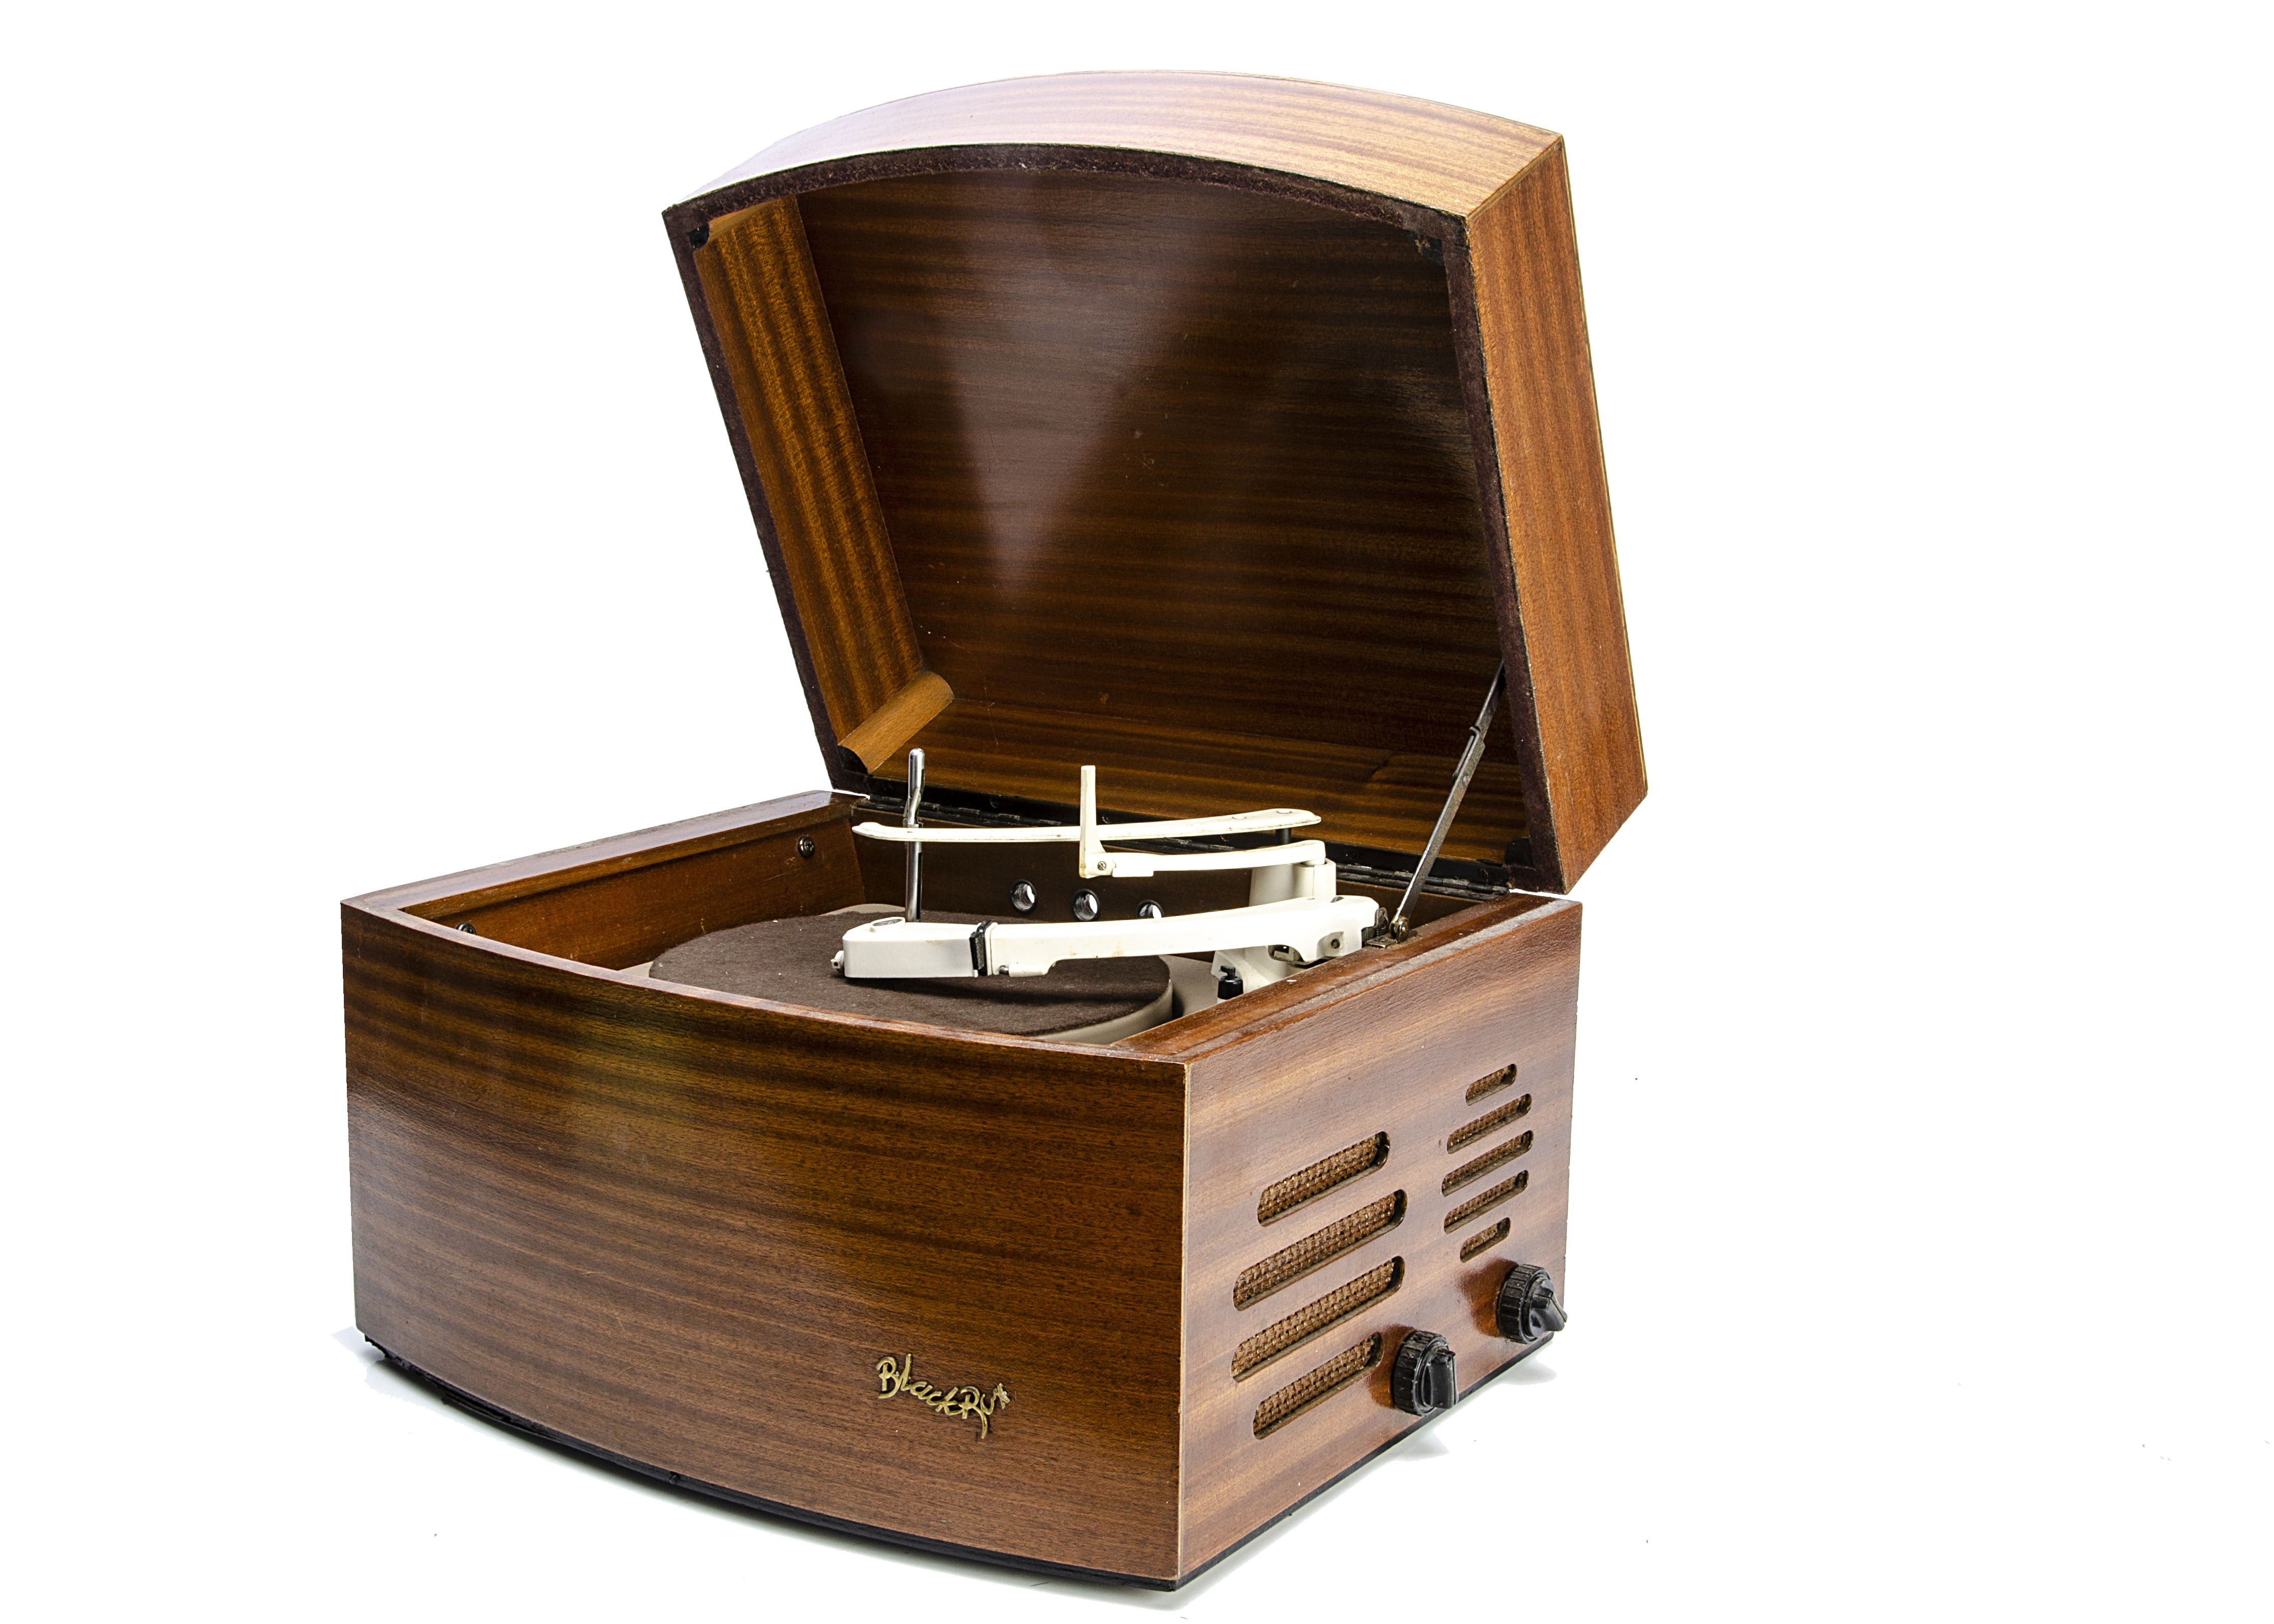 Pye Record Player, a Pye 'Black Box' record player, top wooden case in good order, with a glue